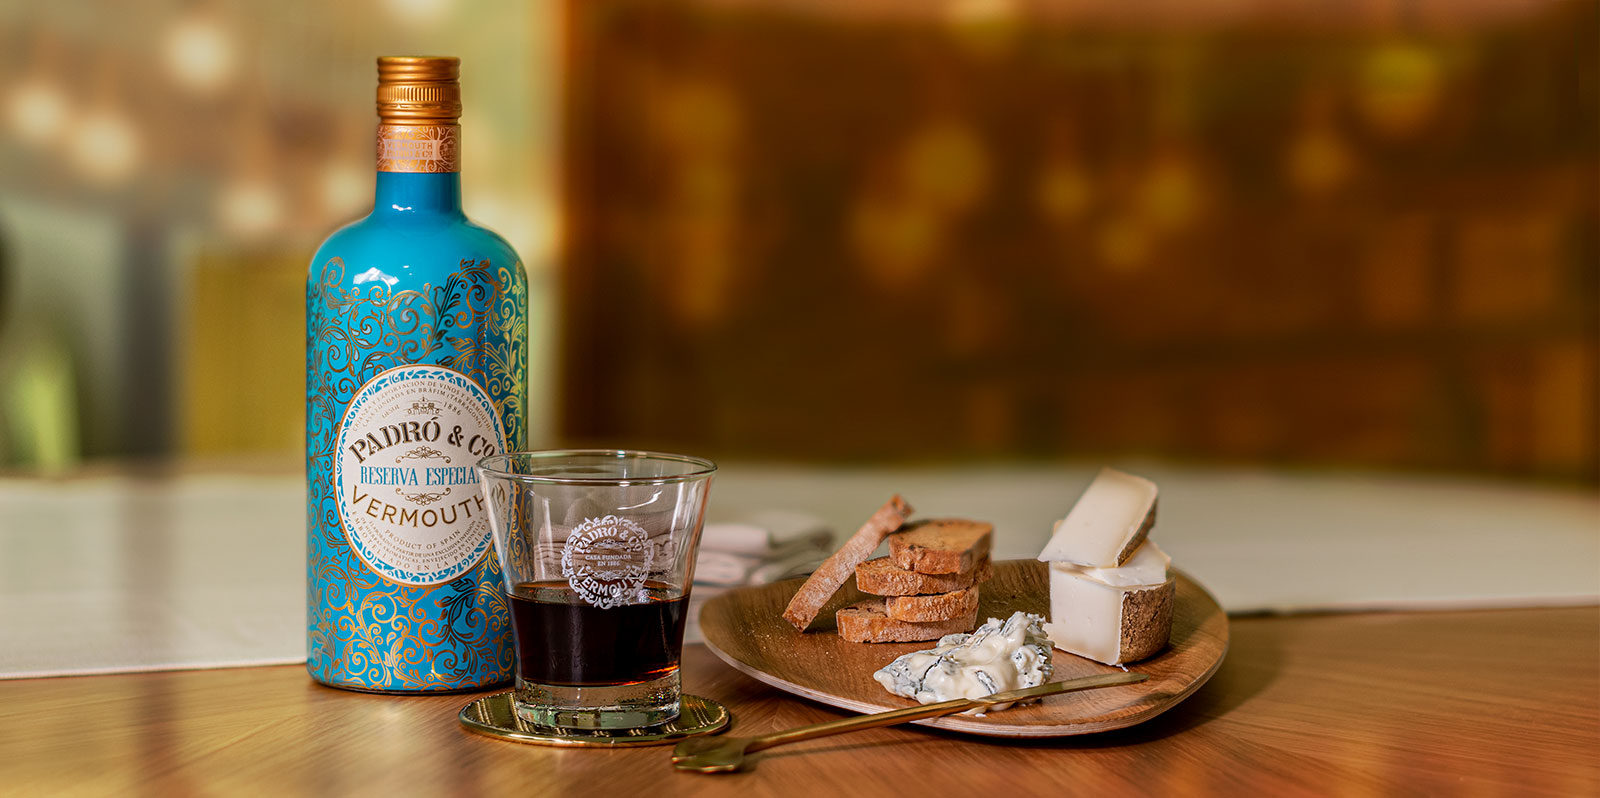 Botella de vermouth Padró with cheese